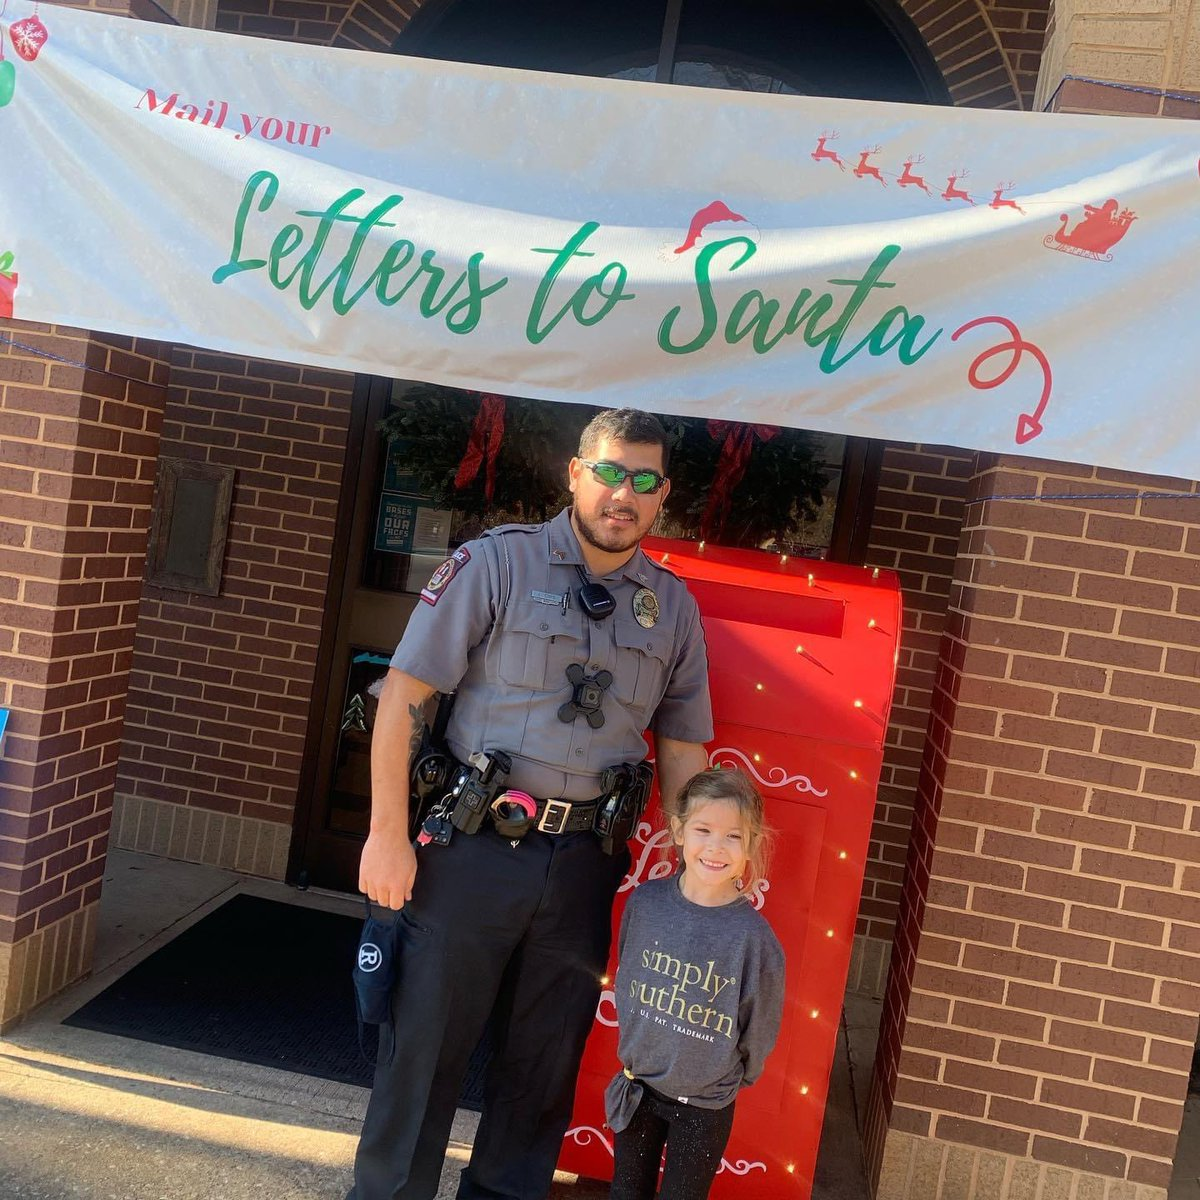 Don't forget to get those letters into Santa! Drop offs available at Town Hall until Wednesday night! 🎁🎅🏻🤶🏻#NiceList #letterstosanta🎅